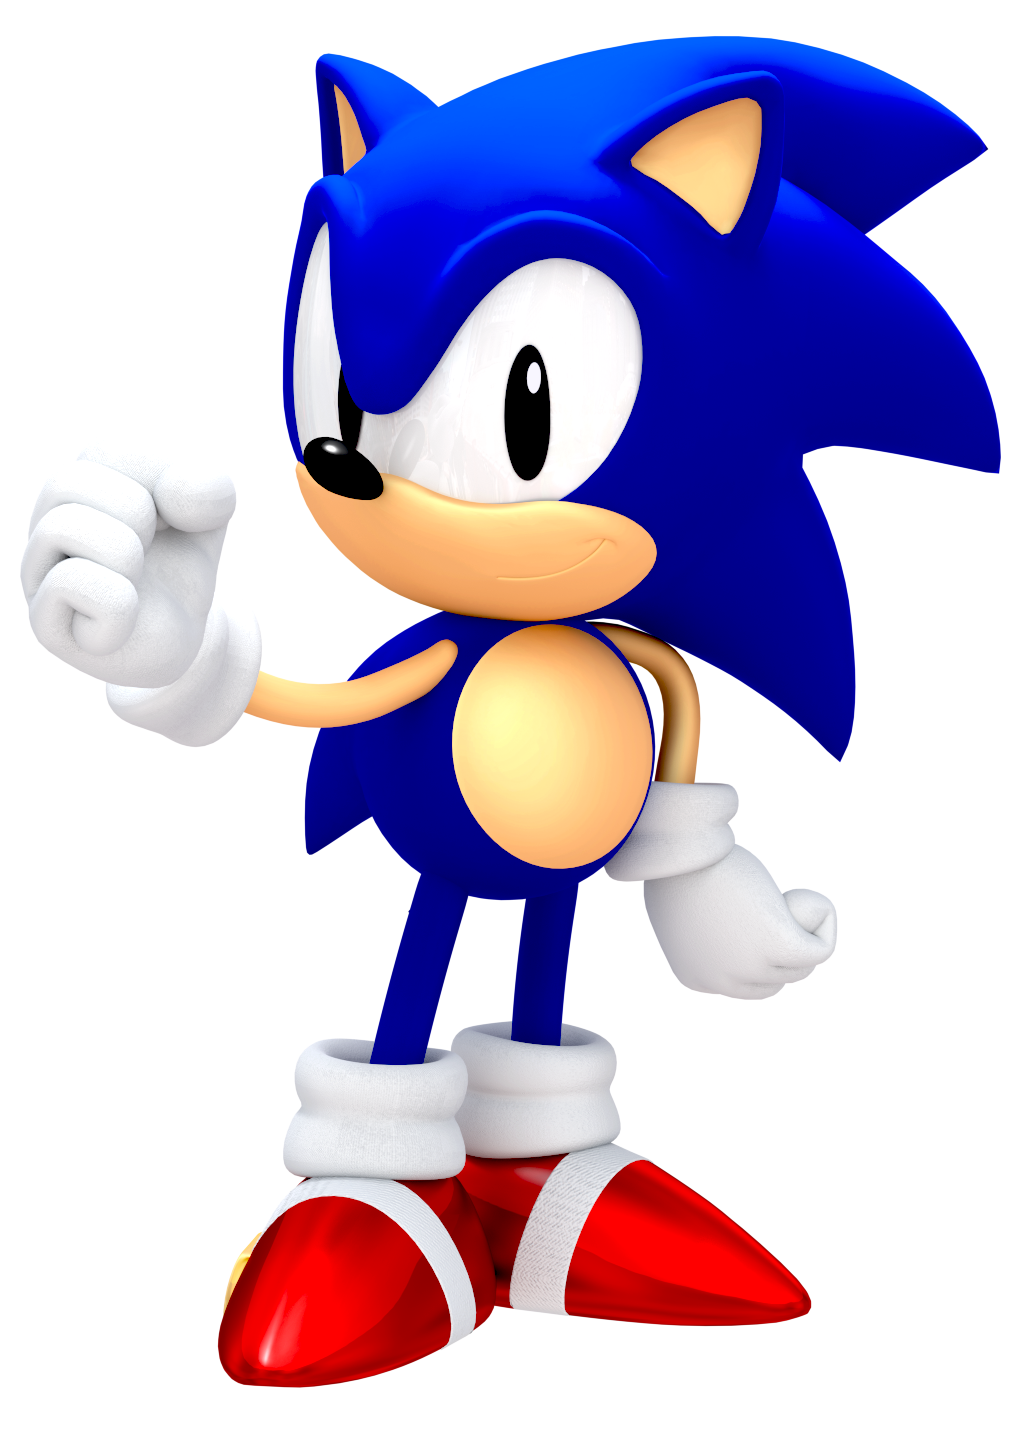 Another 25th Anniversary Classic Sonic Render By Jaysonjeanchannel On Deviantart